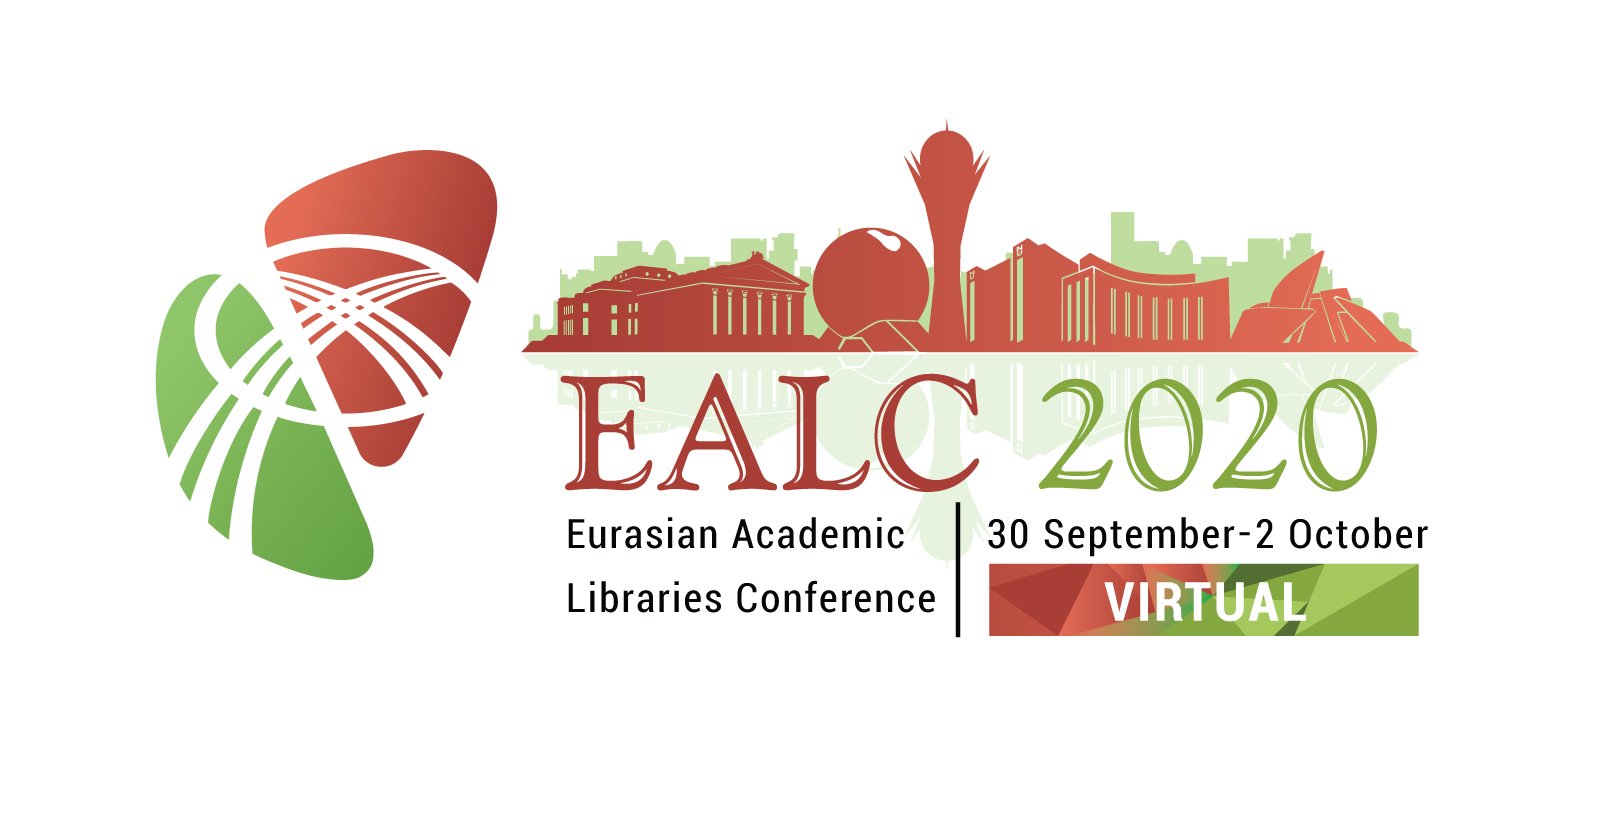 Eurasian Academic Libraries Conference - 2020